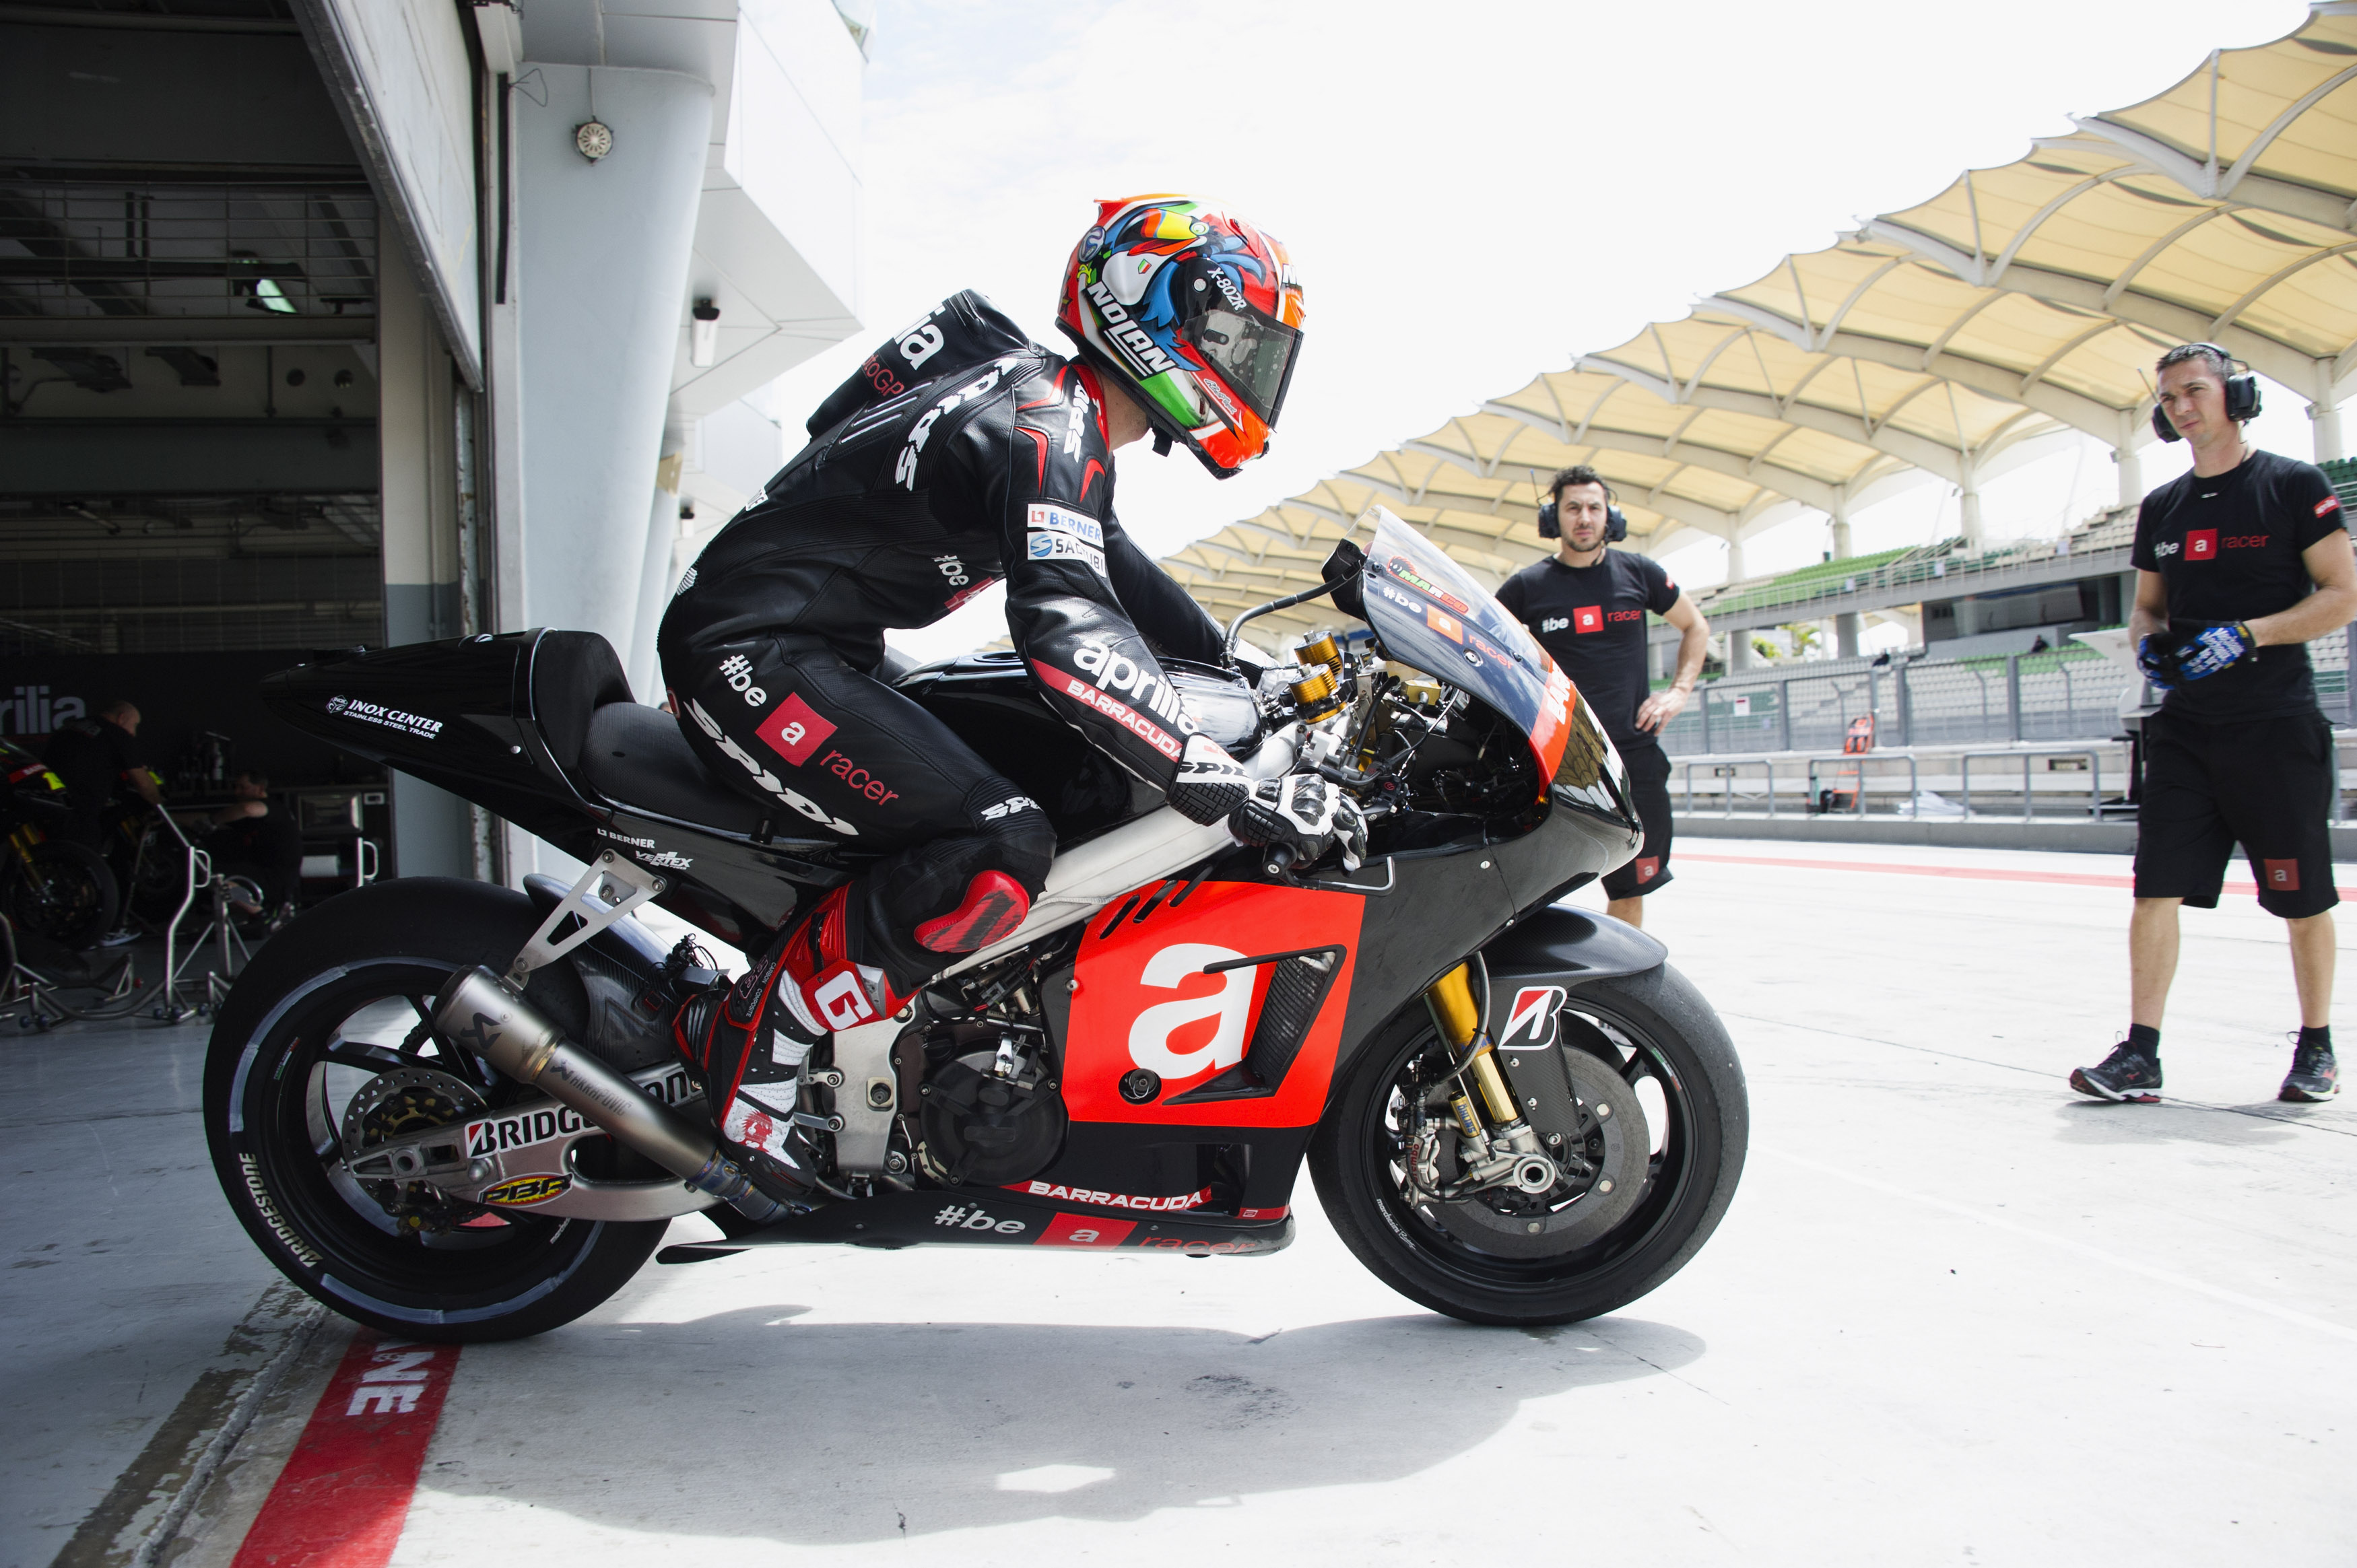 'Positive' second MotoGP test day says Aprilia manager